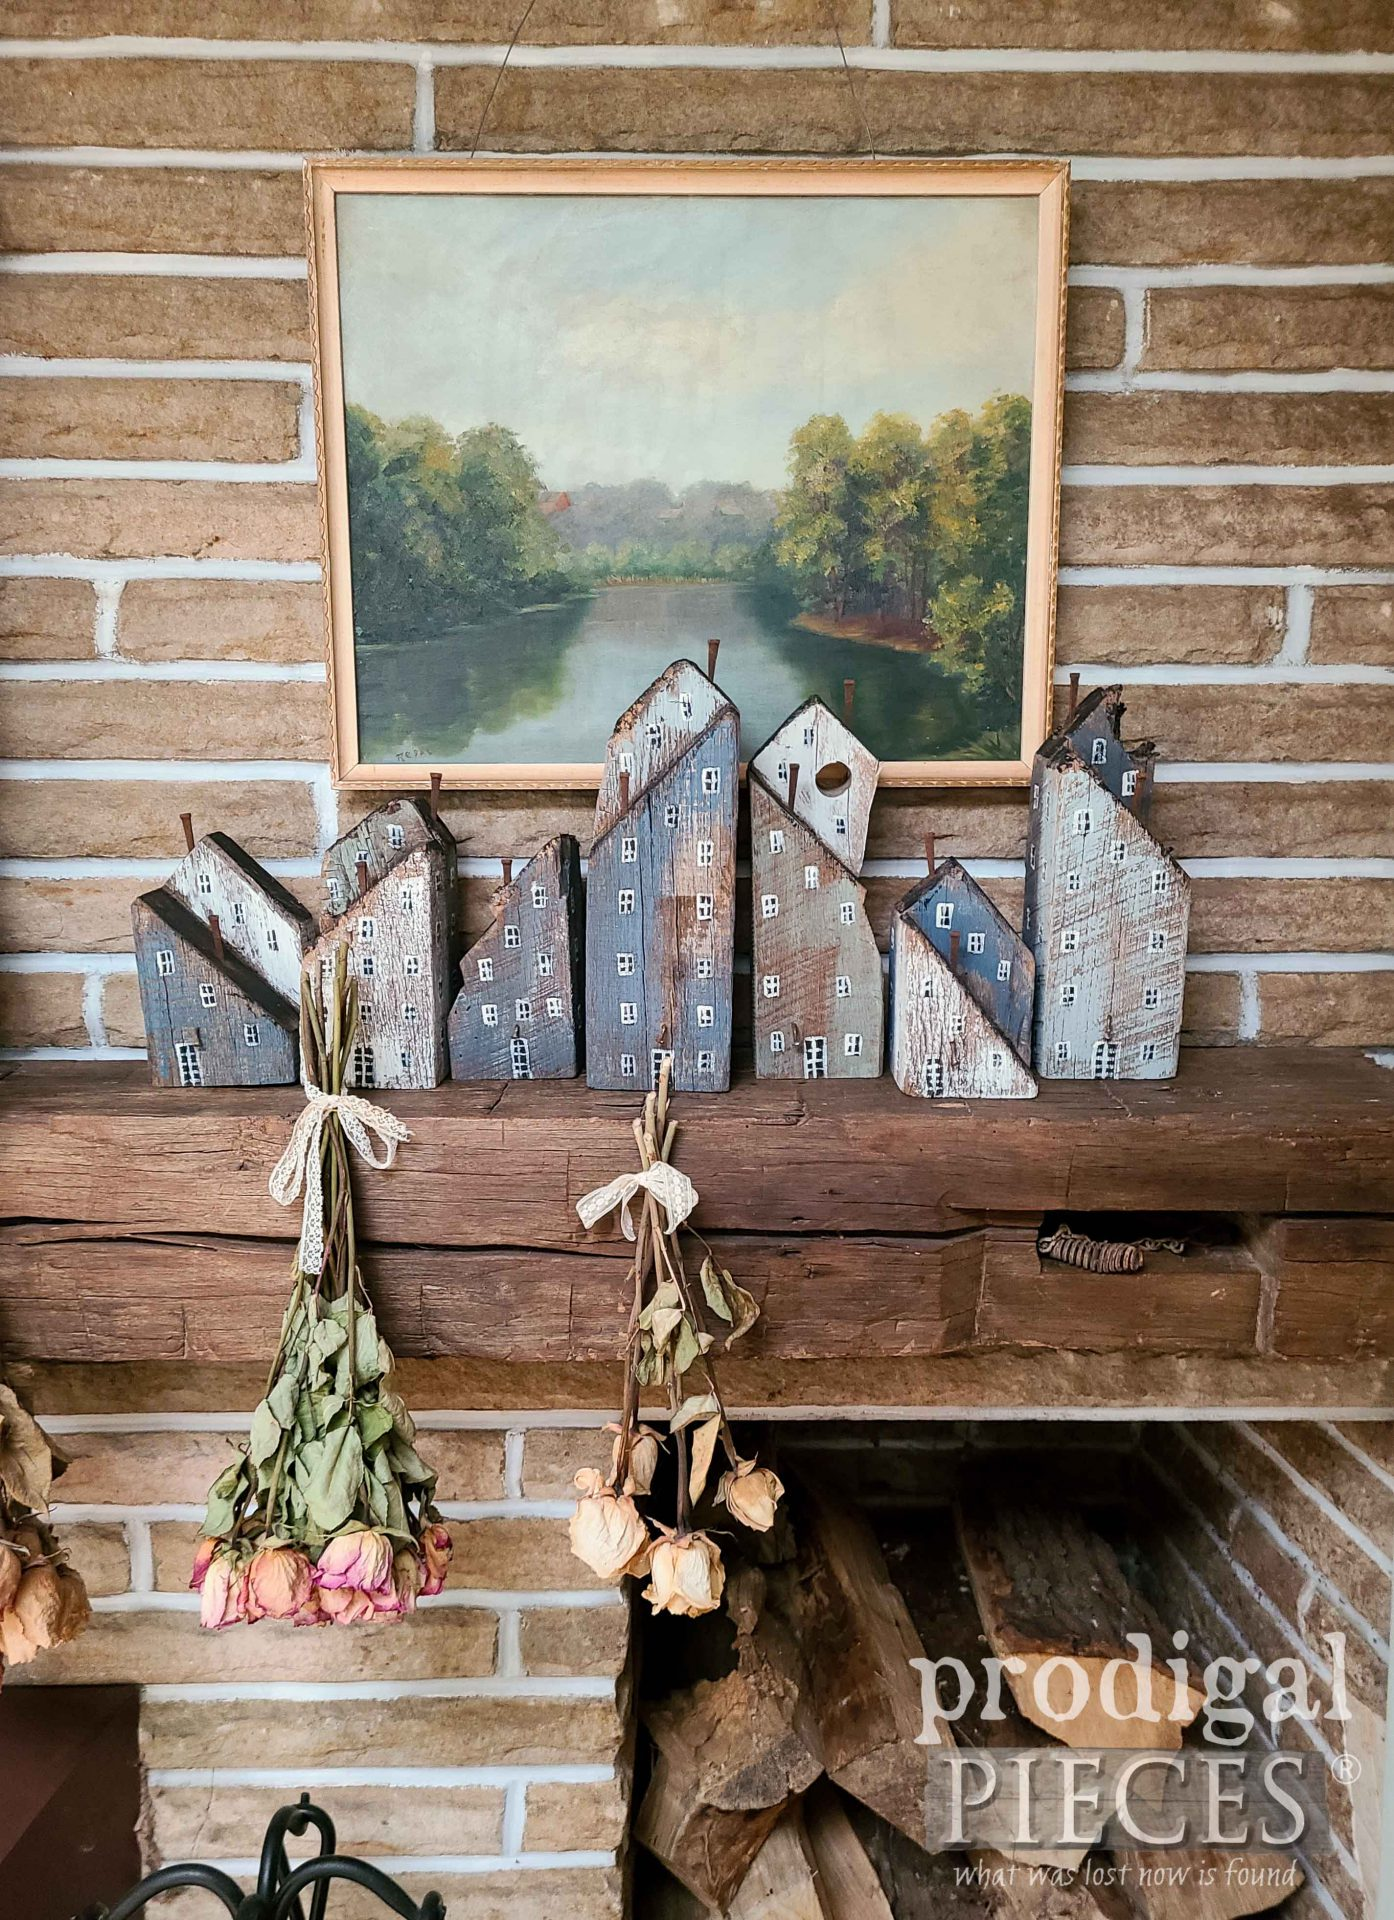 Create your own farmhouse style decor with reclaimed wood houses by Larissa of Prodigal Pieces | prodigalpieces.com #prodigalpieces #diy #farmhouse #homedecor